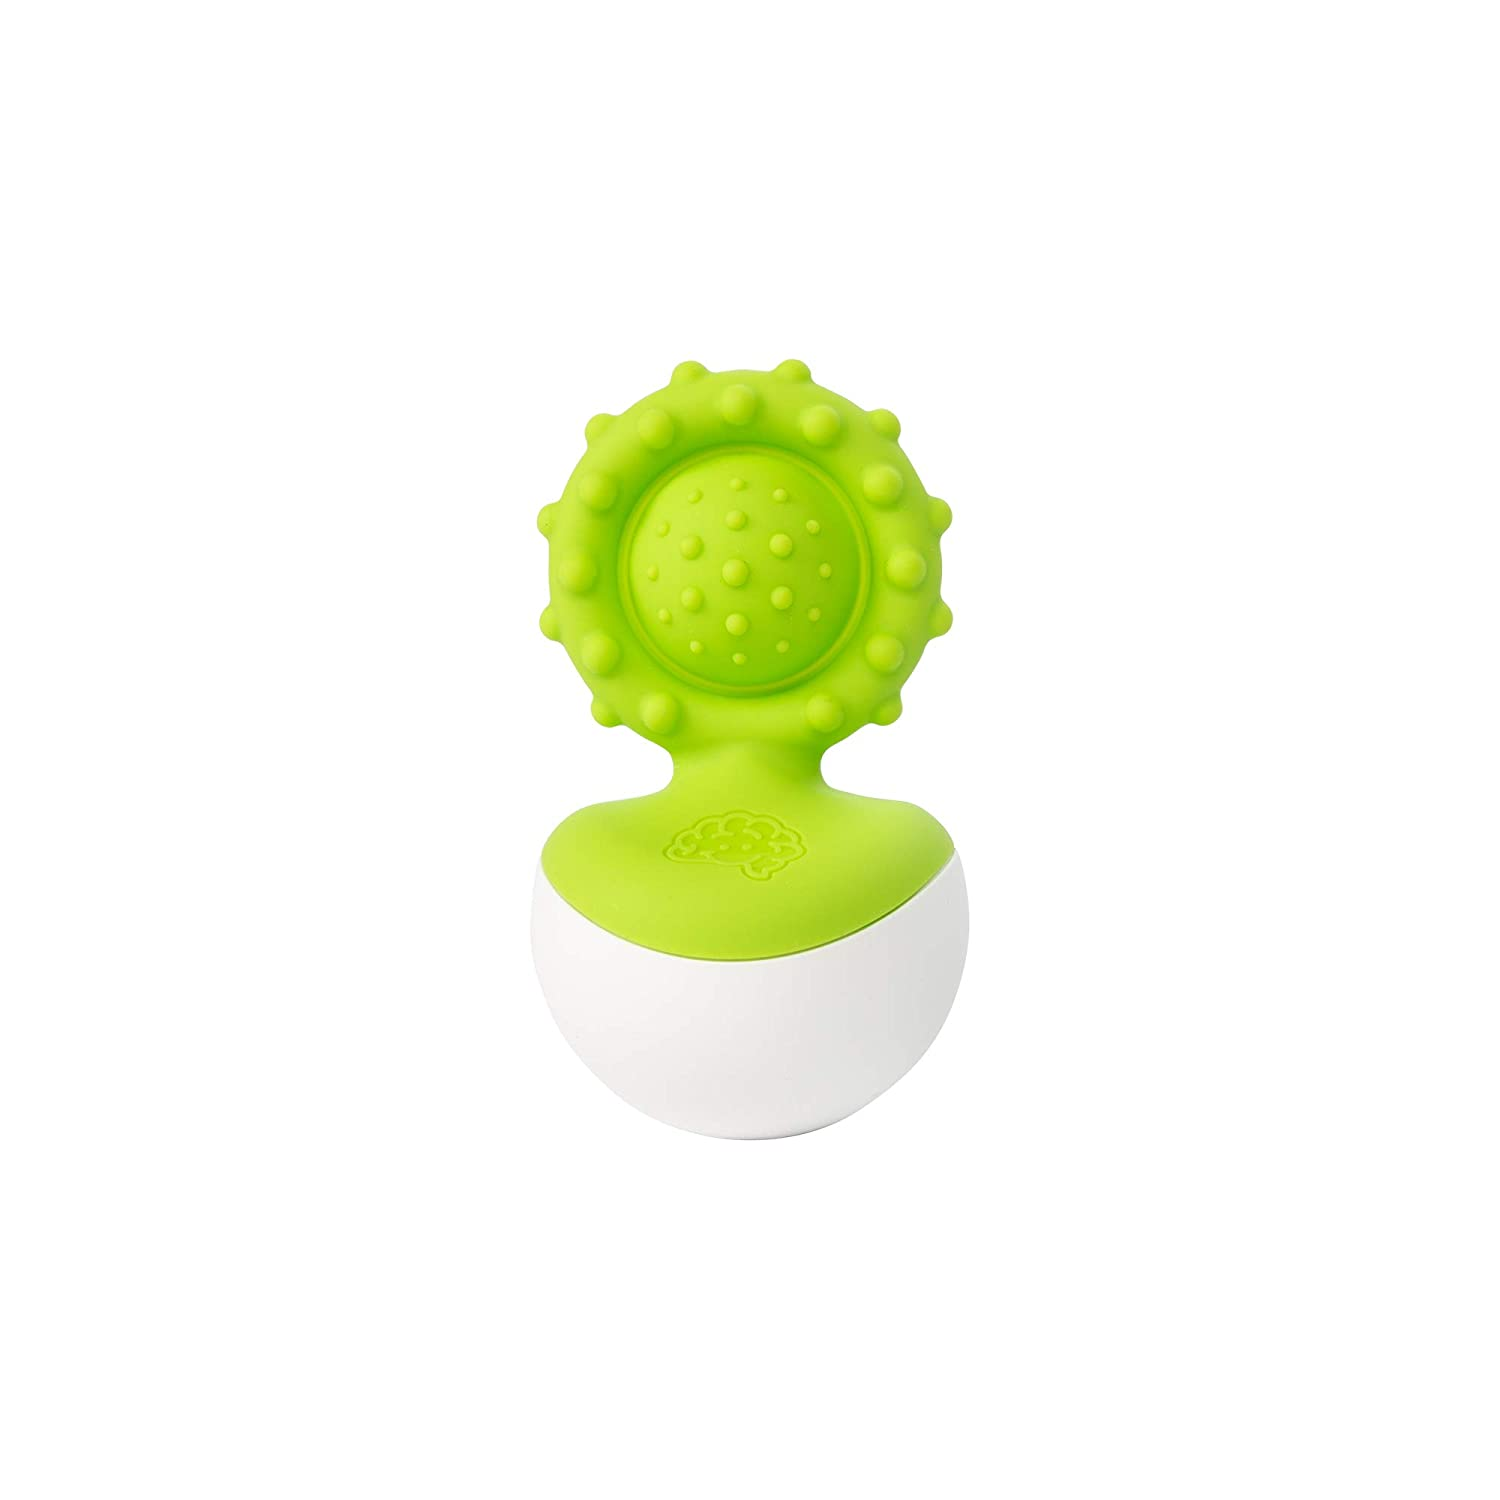 Fat Brain Toys Dimpl Wobbl Green Baby Toys /& Gifts for Ages 0 to 1